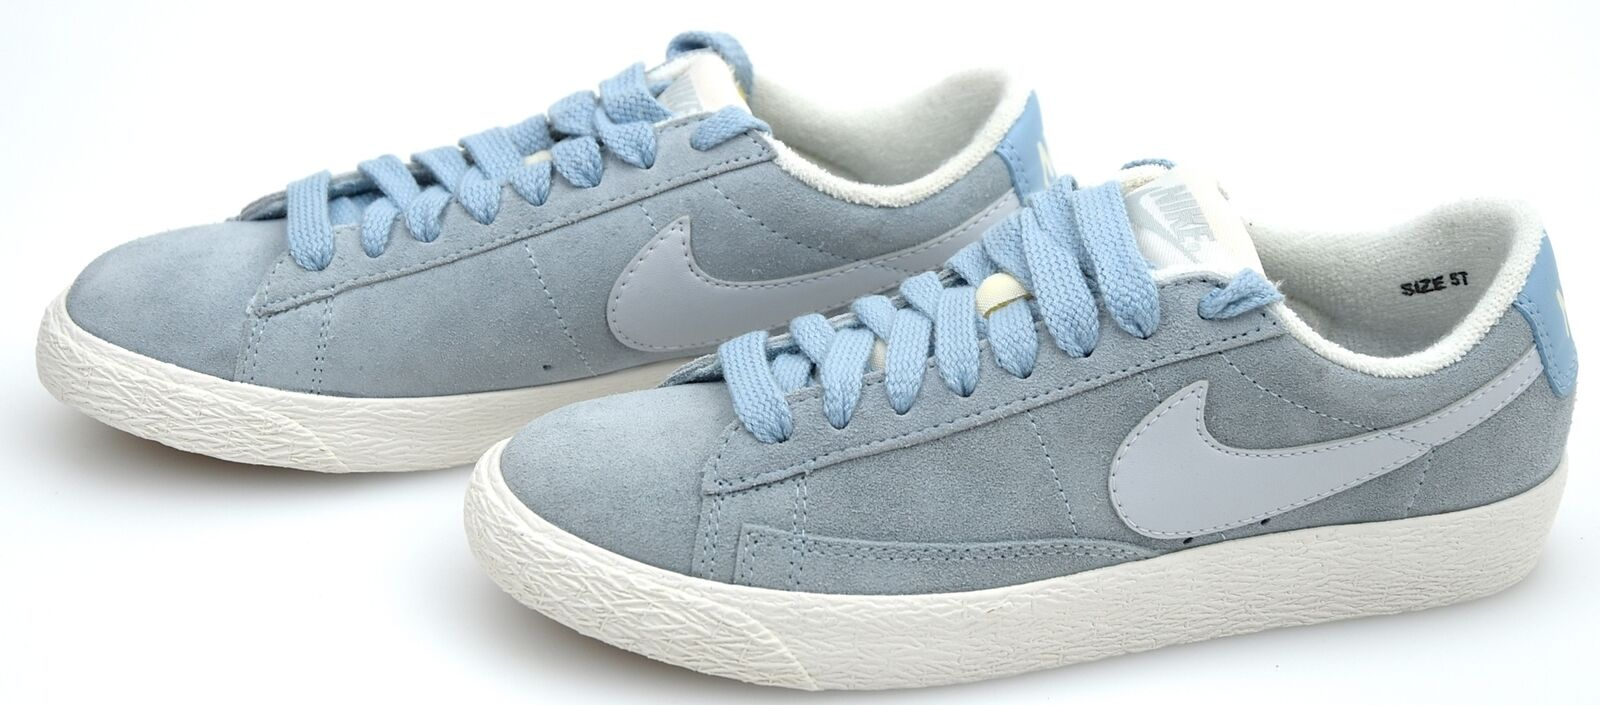 Nike Womens Sneakers Casual shoes Trainers Blazer Low Suede VNTG 517371 402